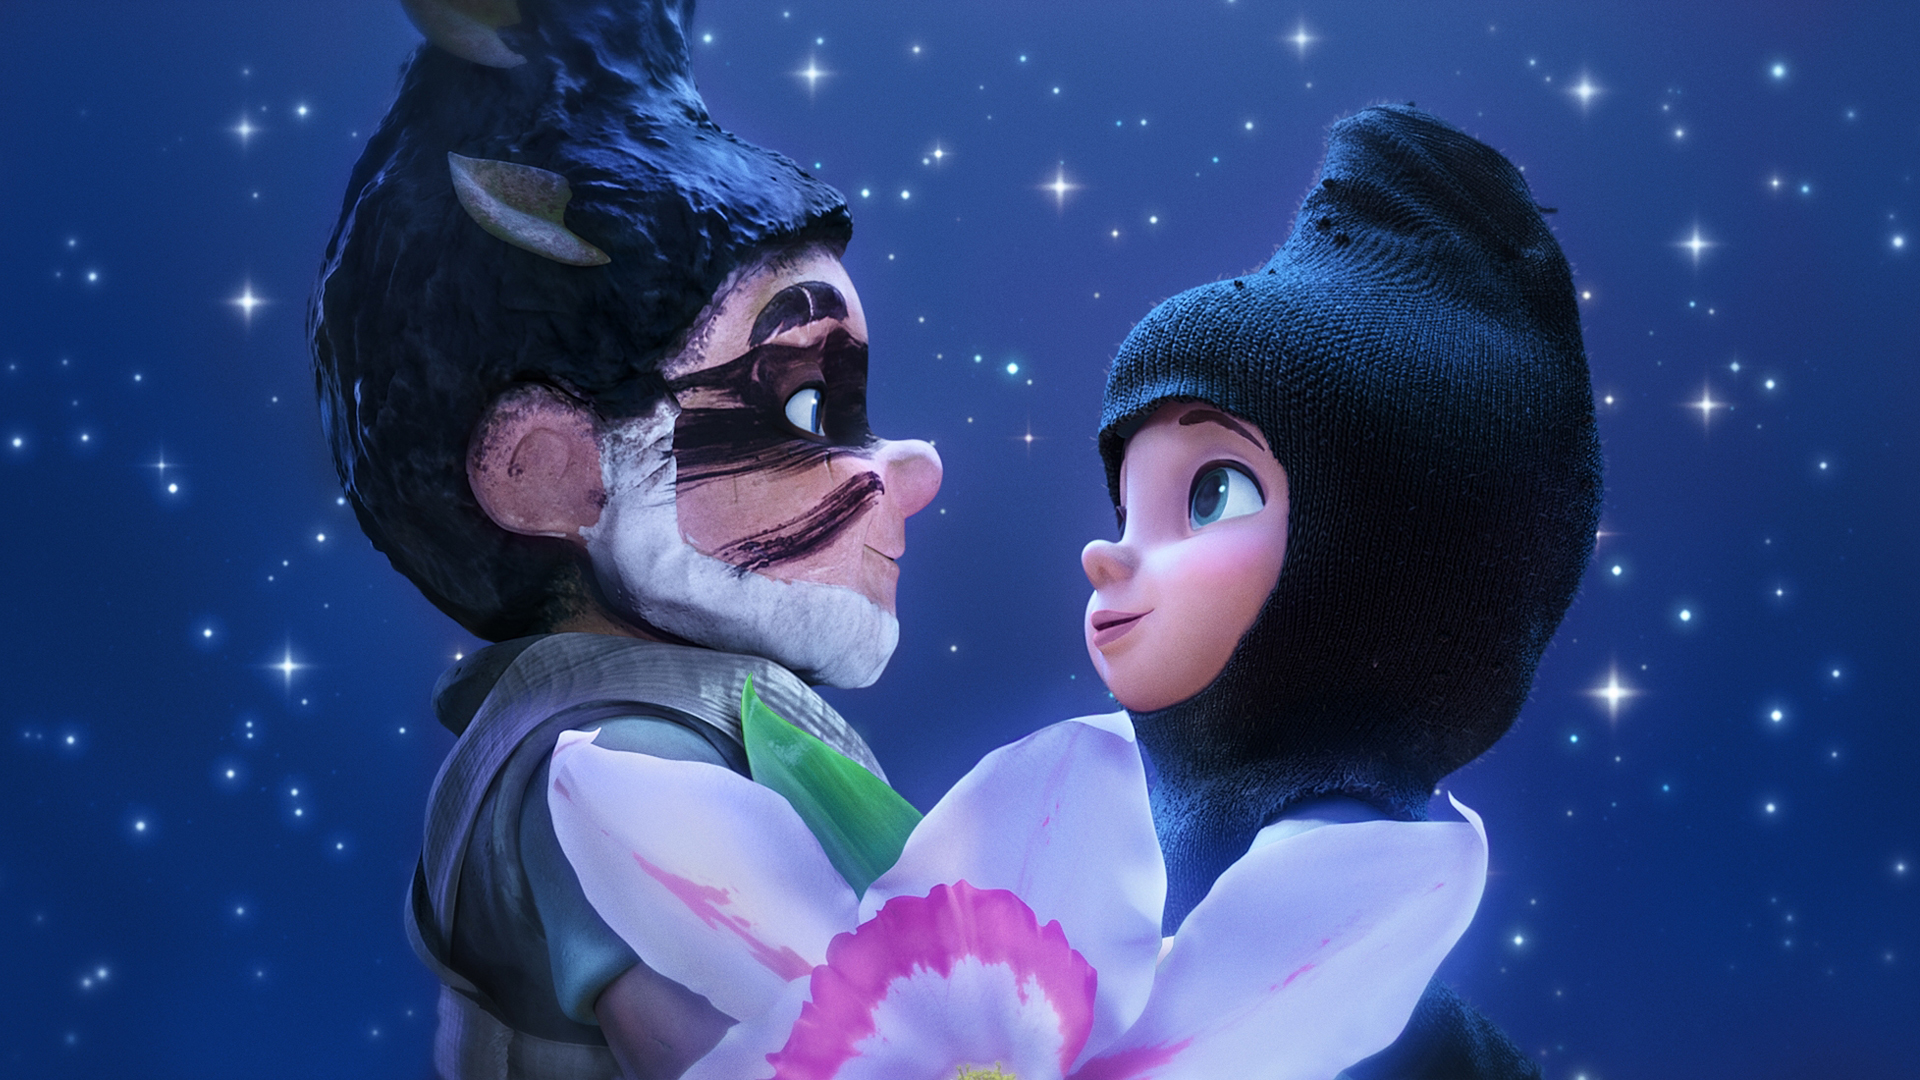 Gnomeo and Juliet Wallpaper HD1